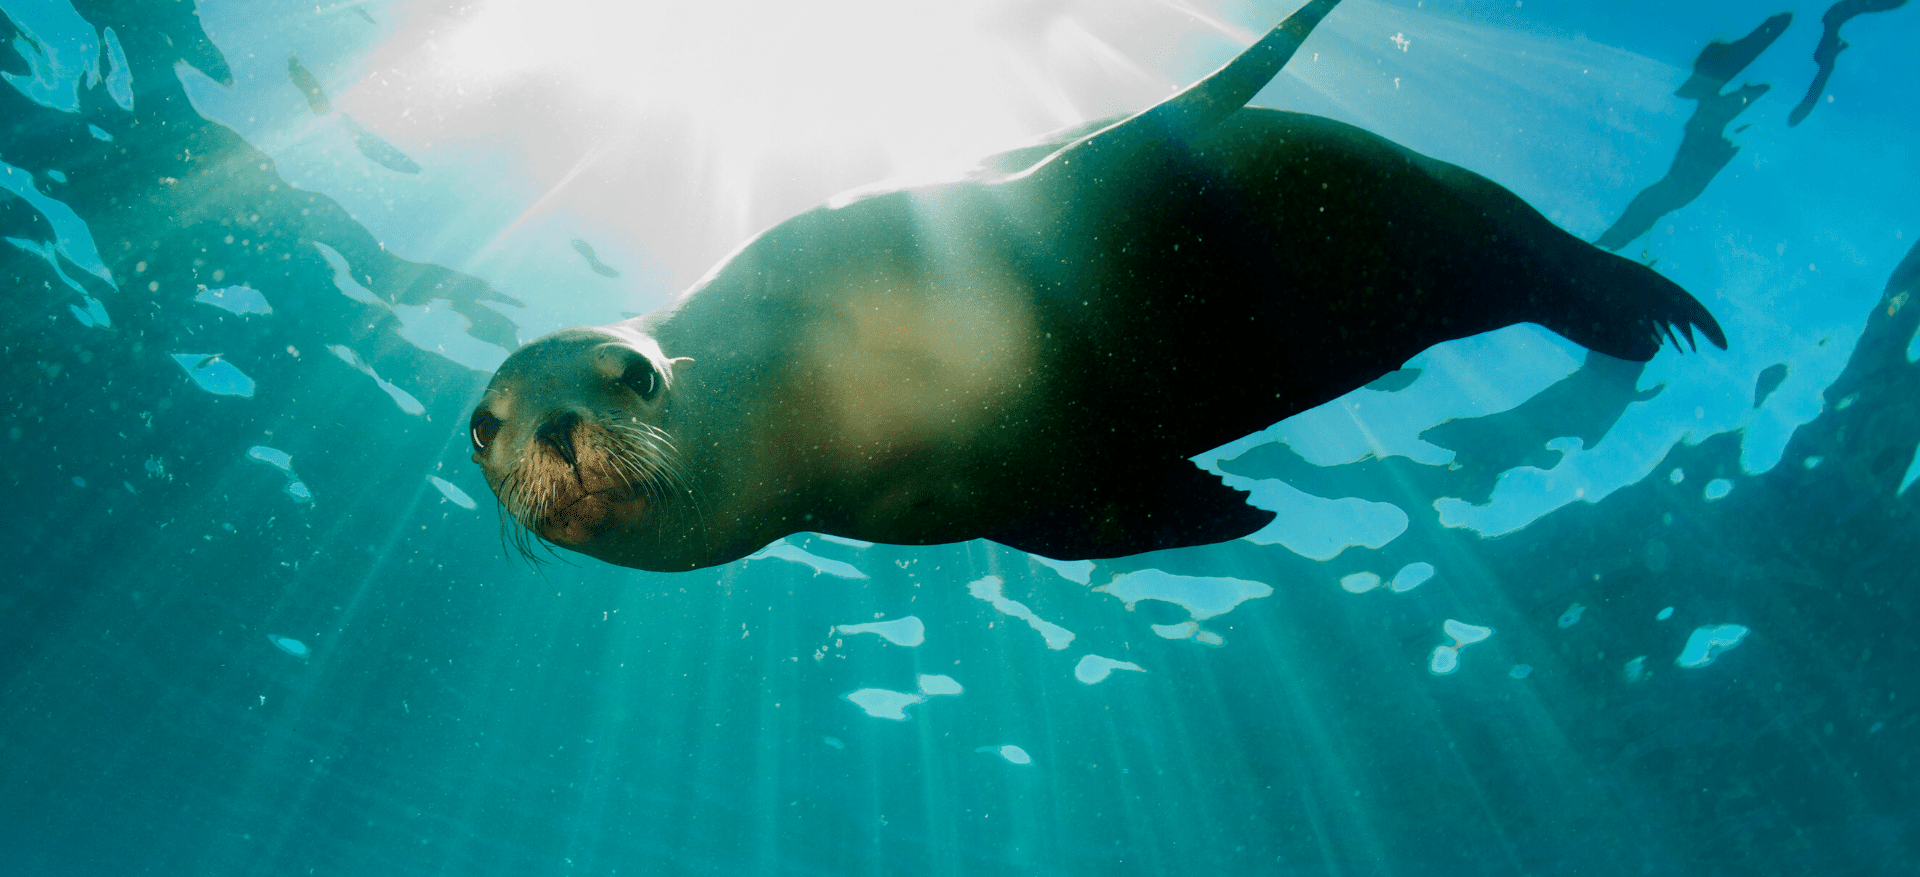 Inquisitive seal in deep water, agile and fluid with rays on sunshine shining through